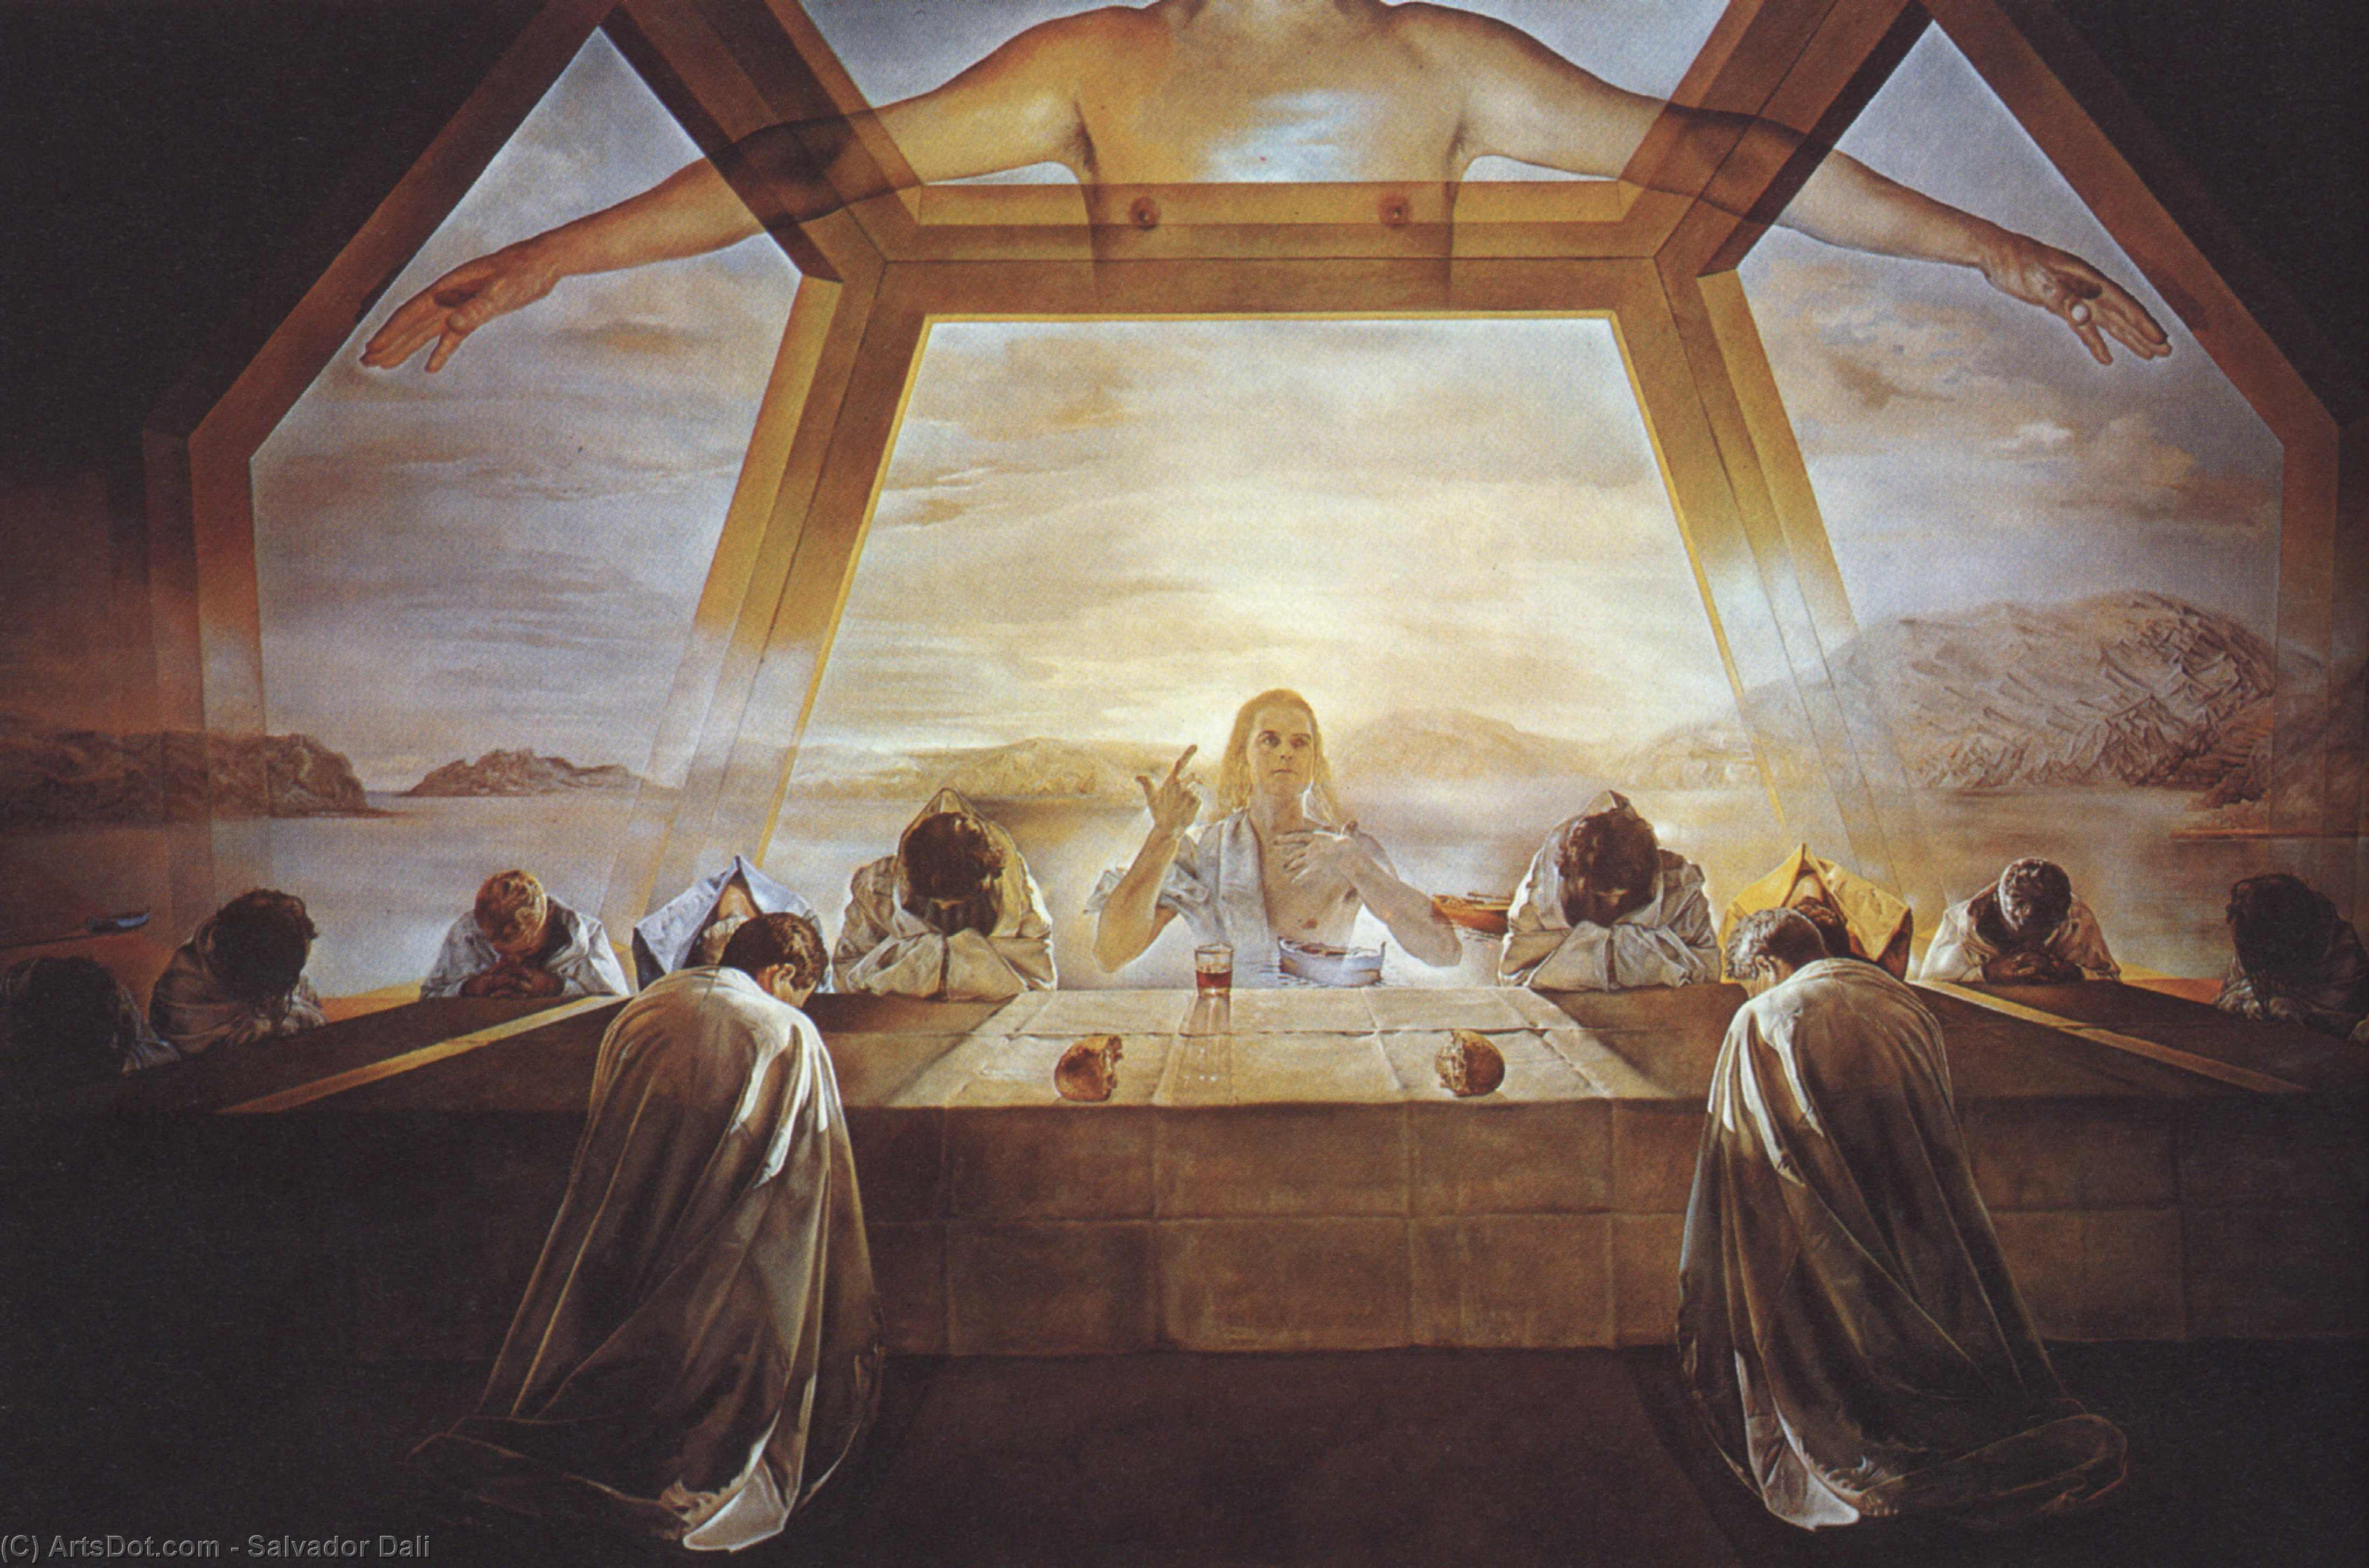 Wikioo.org - The Encyclopedia of Fine Arts - Painting, Artwork by Salvador Dali - The Sacrament of the Last Supper